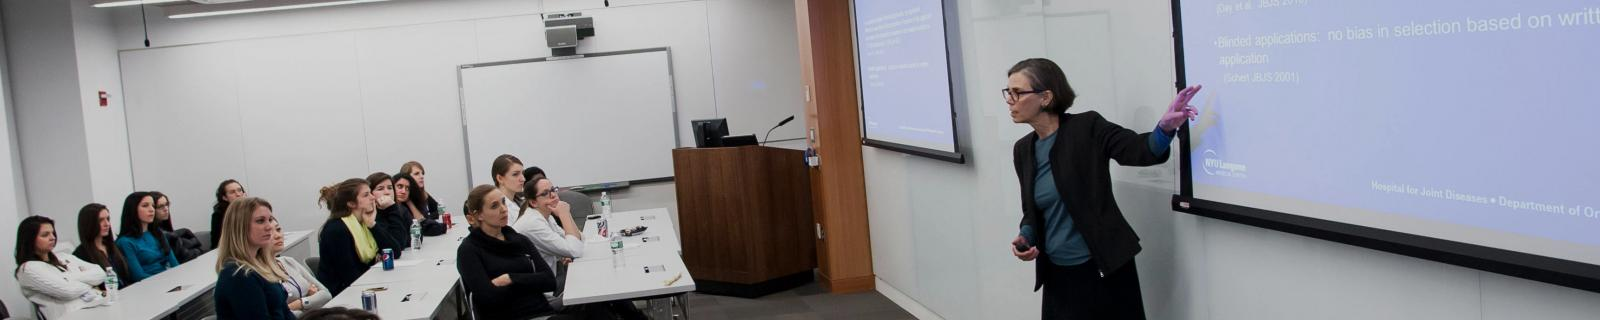 Professor Gives Powerpoint Presentation to Class